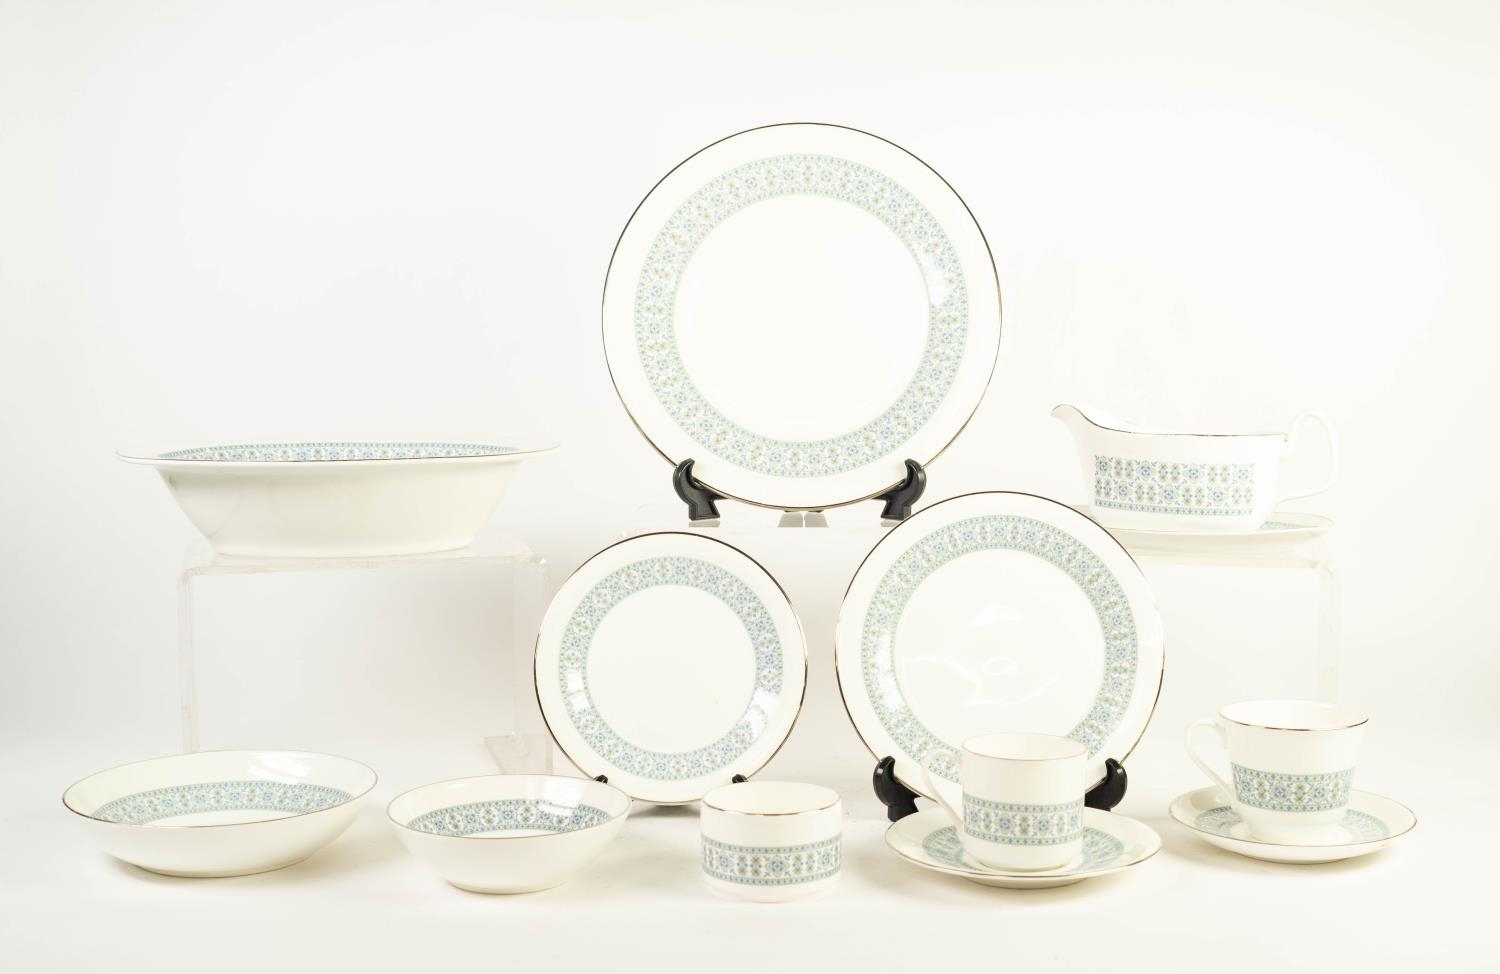 SIXTY FOUR PIECE ROYAL DOULTON COUNTERPOINT PATTERN CHINA PART DINNER, TEA AND COFFEE SERVICE, NOW